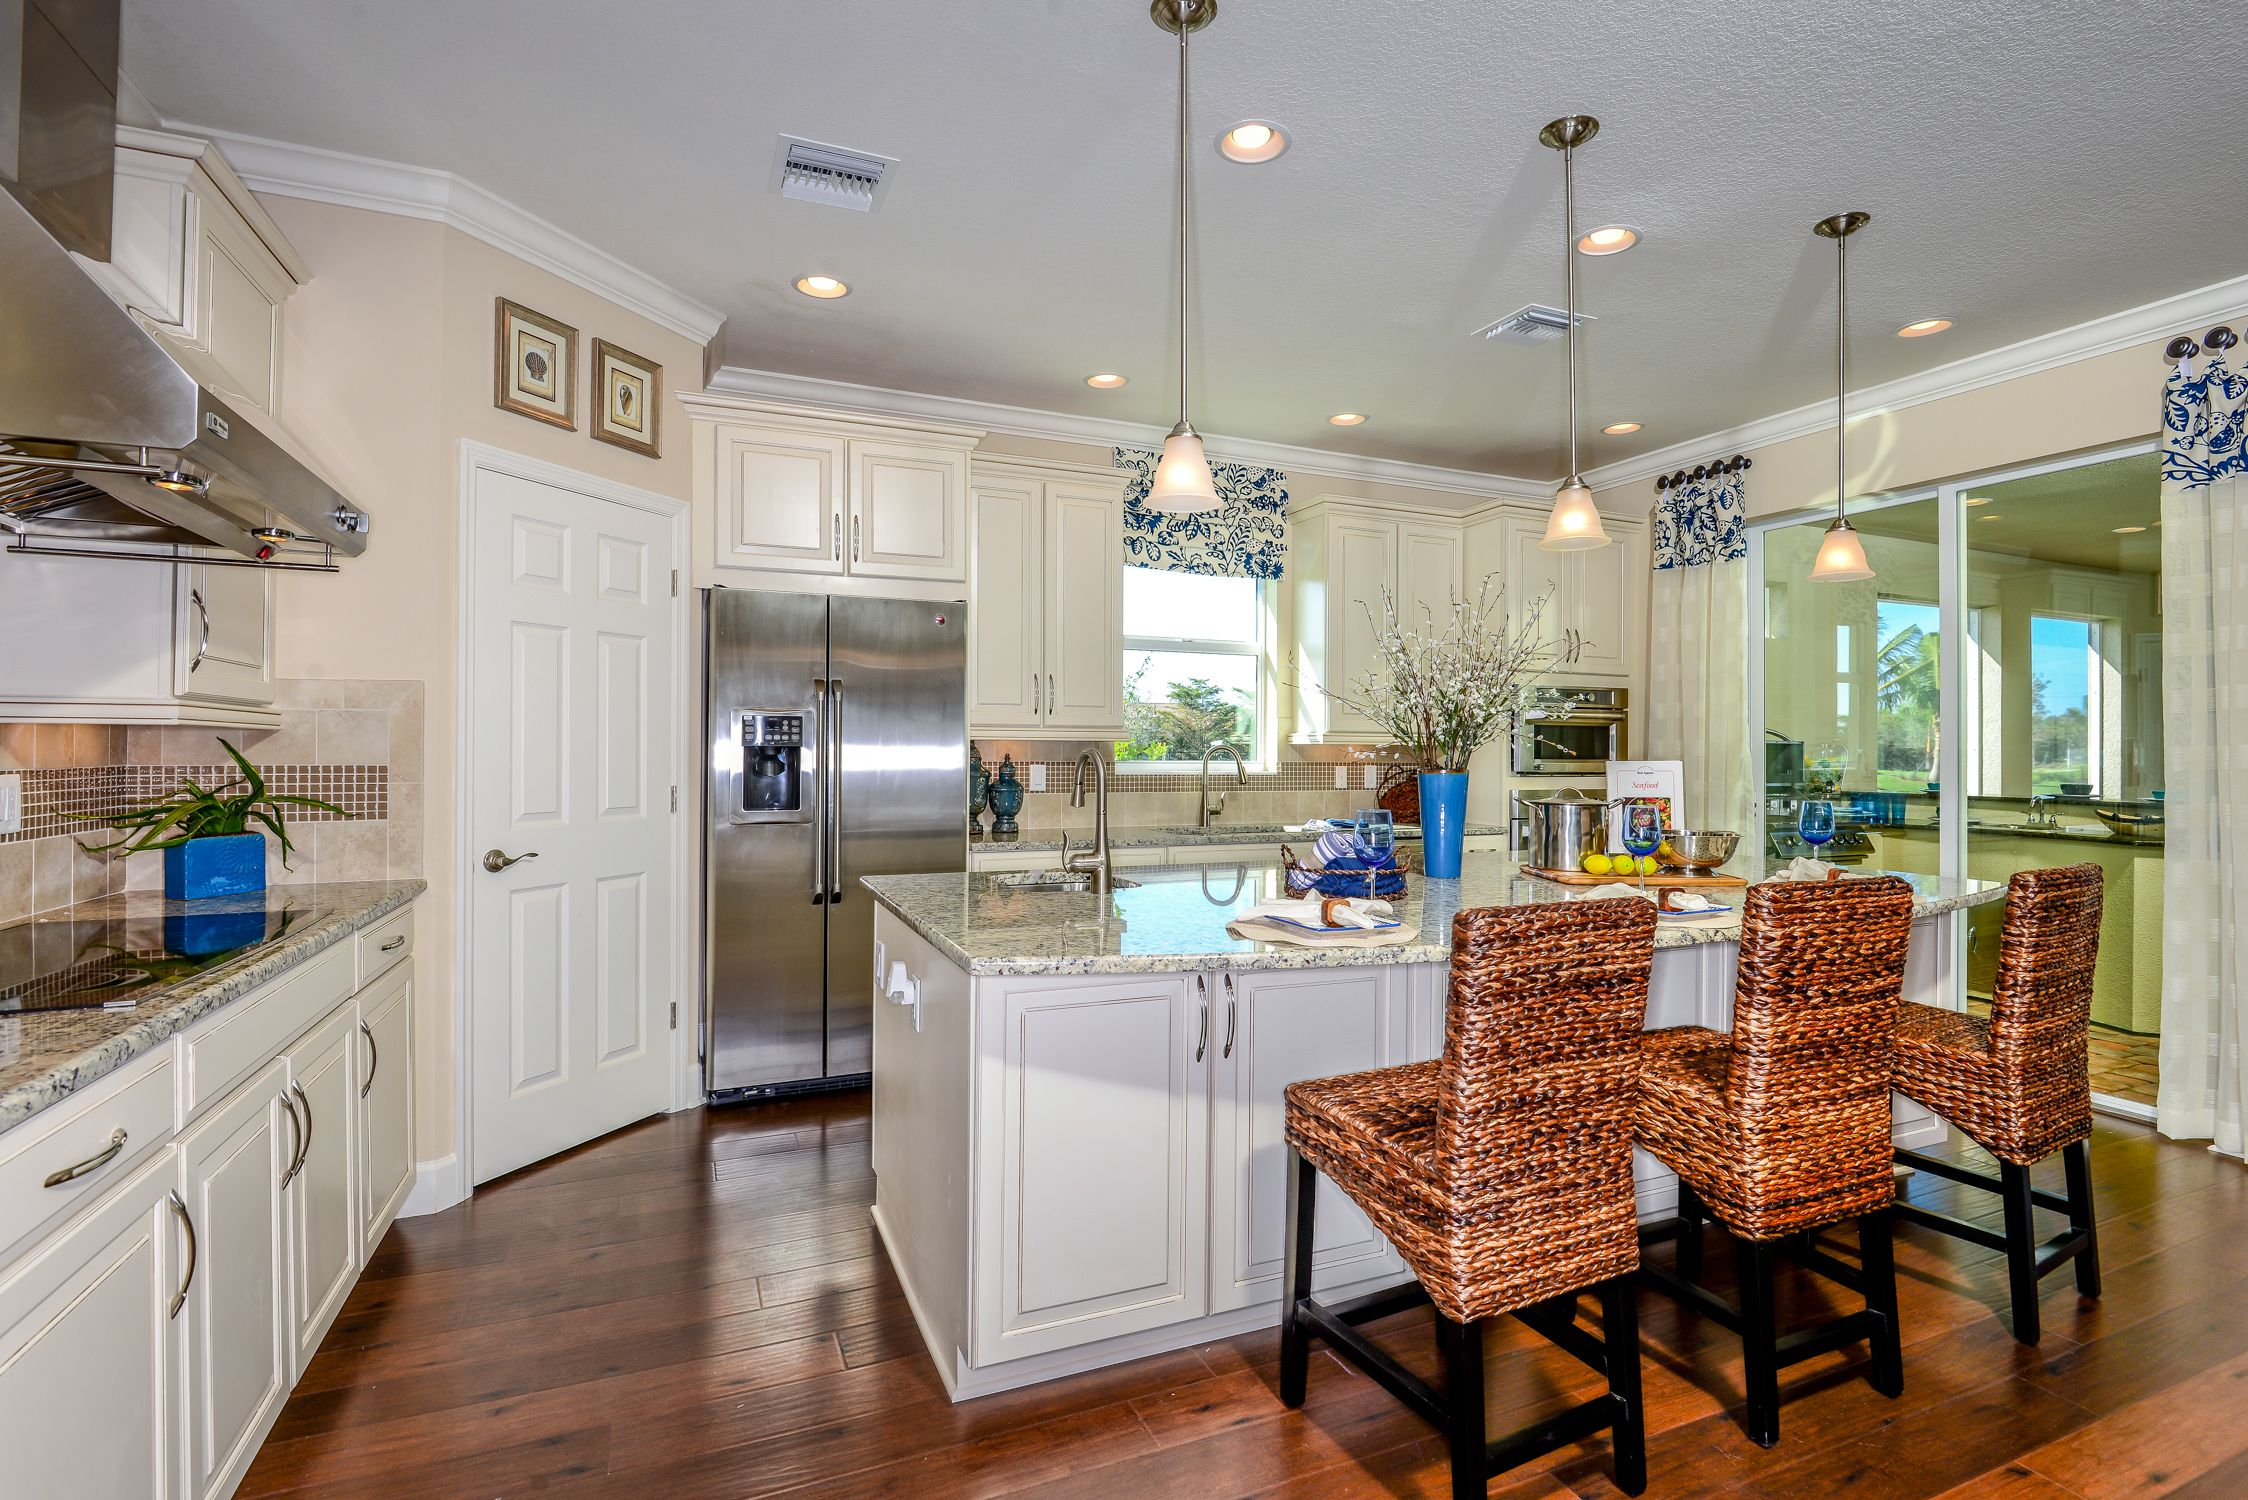 Embrace The Magic Of Beautiful Beginnings At Sandoval In Cape Coral Capecoral Florida Homesforsale Realestateage Kitchen Inspirations Cape Coral New Homes